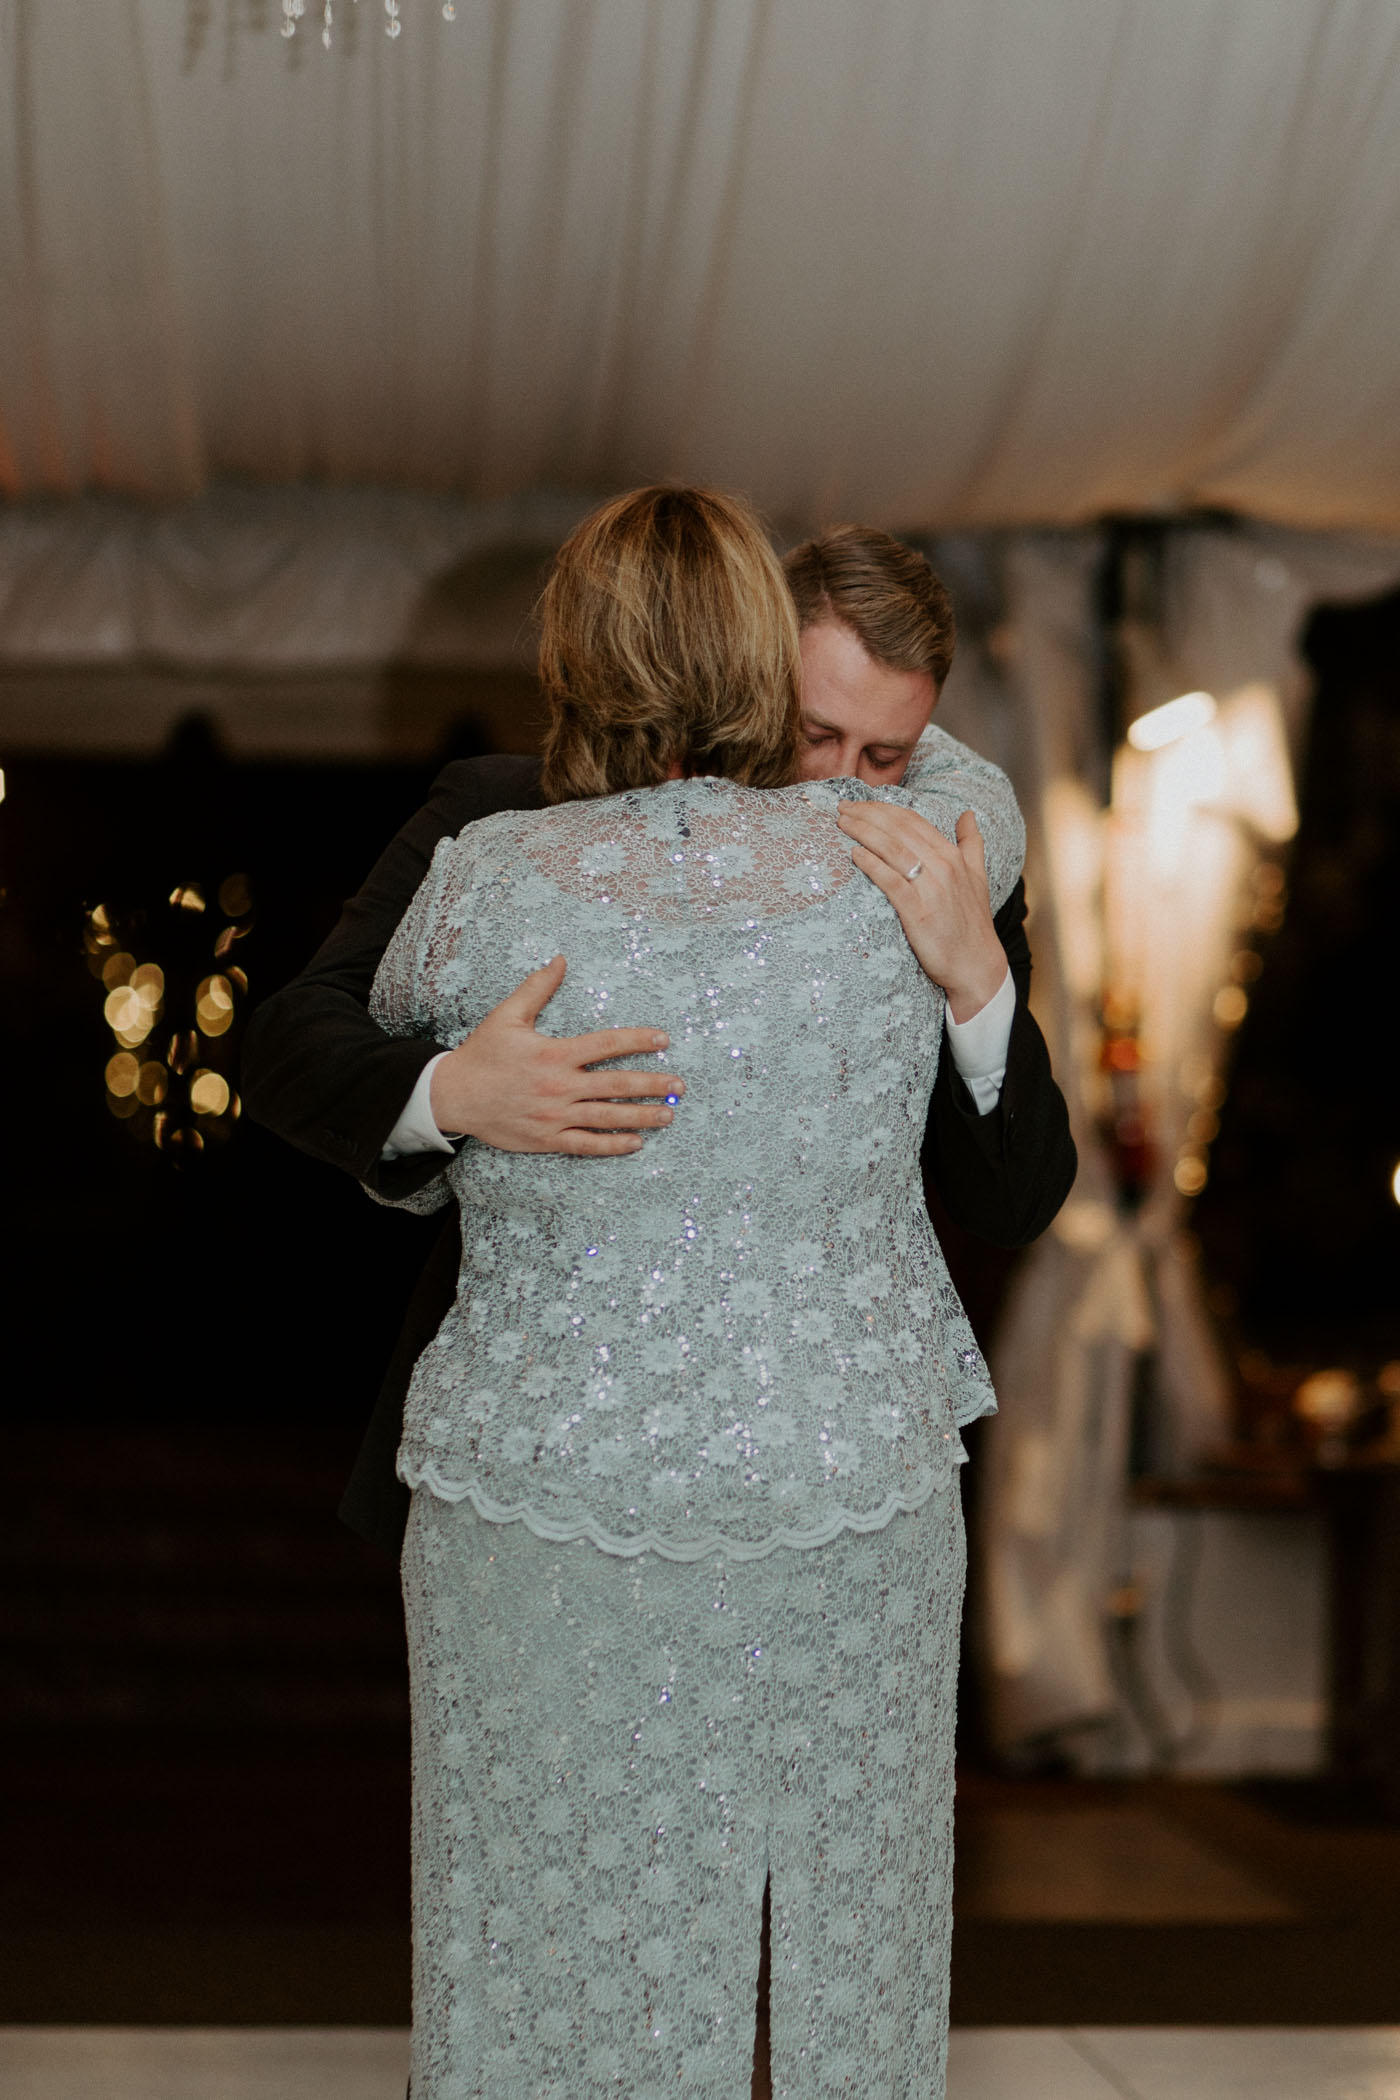 Mother son dance on wedding day with emotional mother